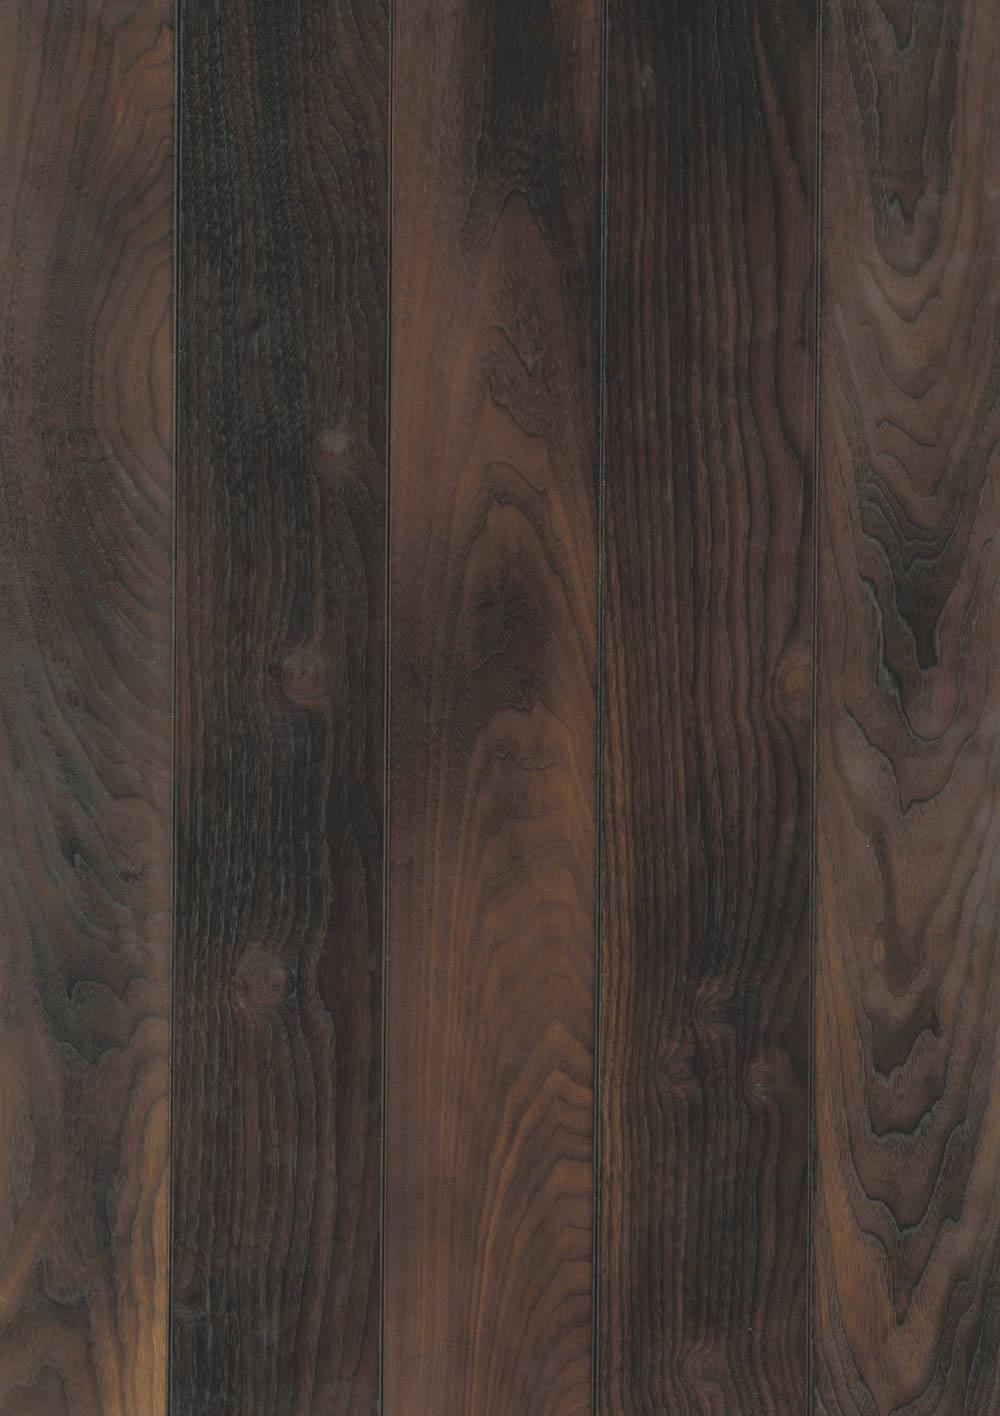 Select Harvest Walnut New Face Walnut Charred Character 5